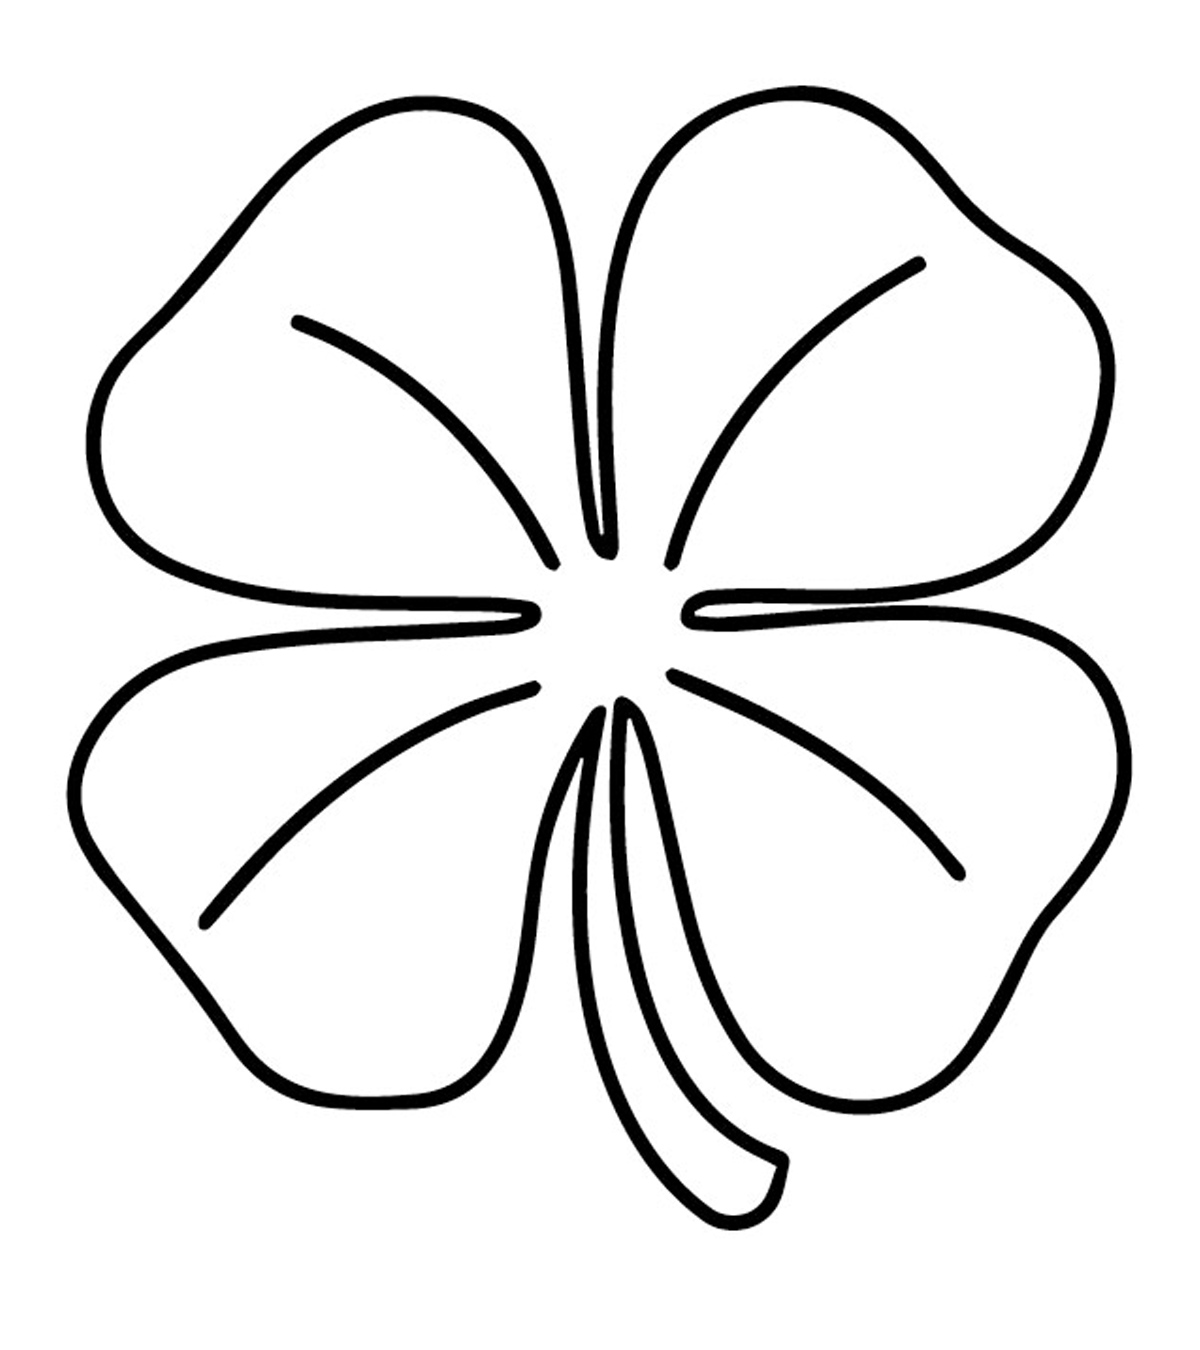 graphic about Printable Four Leaf Clover titled Supreme 20 No cost Printable 4 Leaf Clover Coloring Webpages On the net